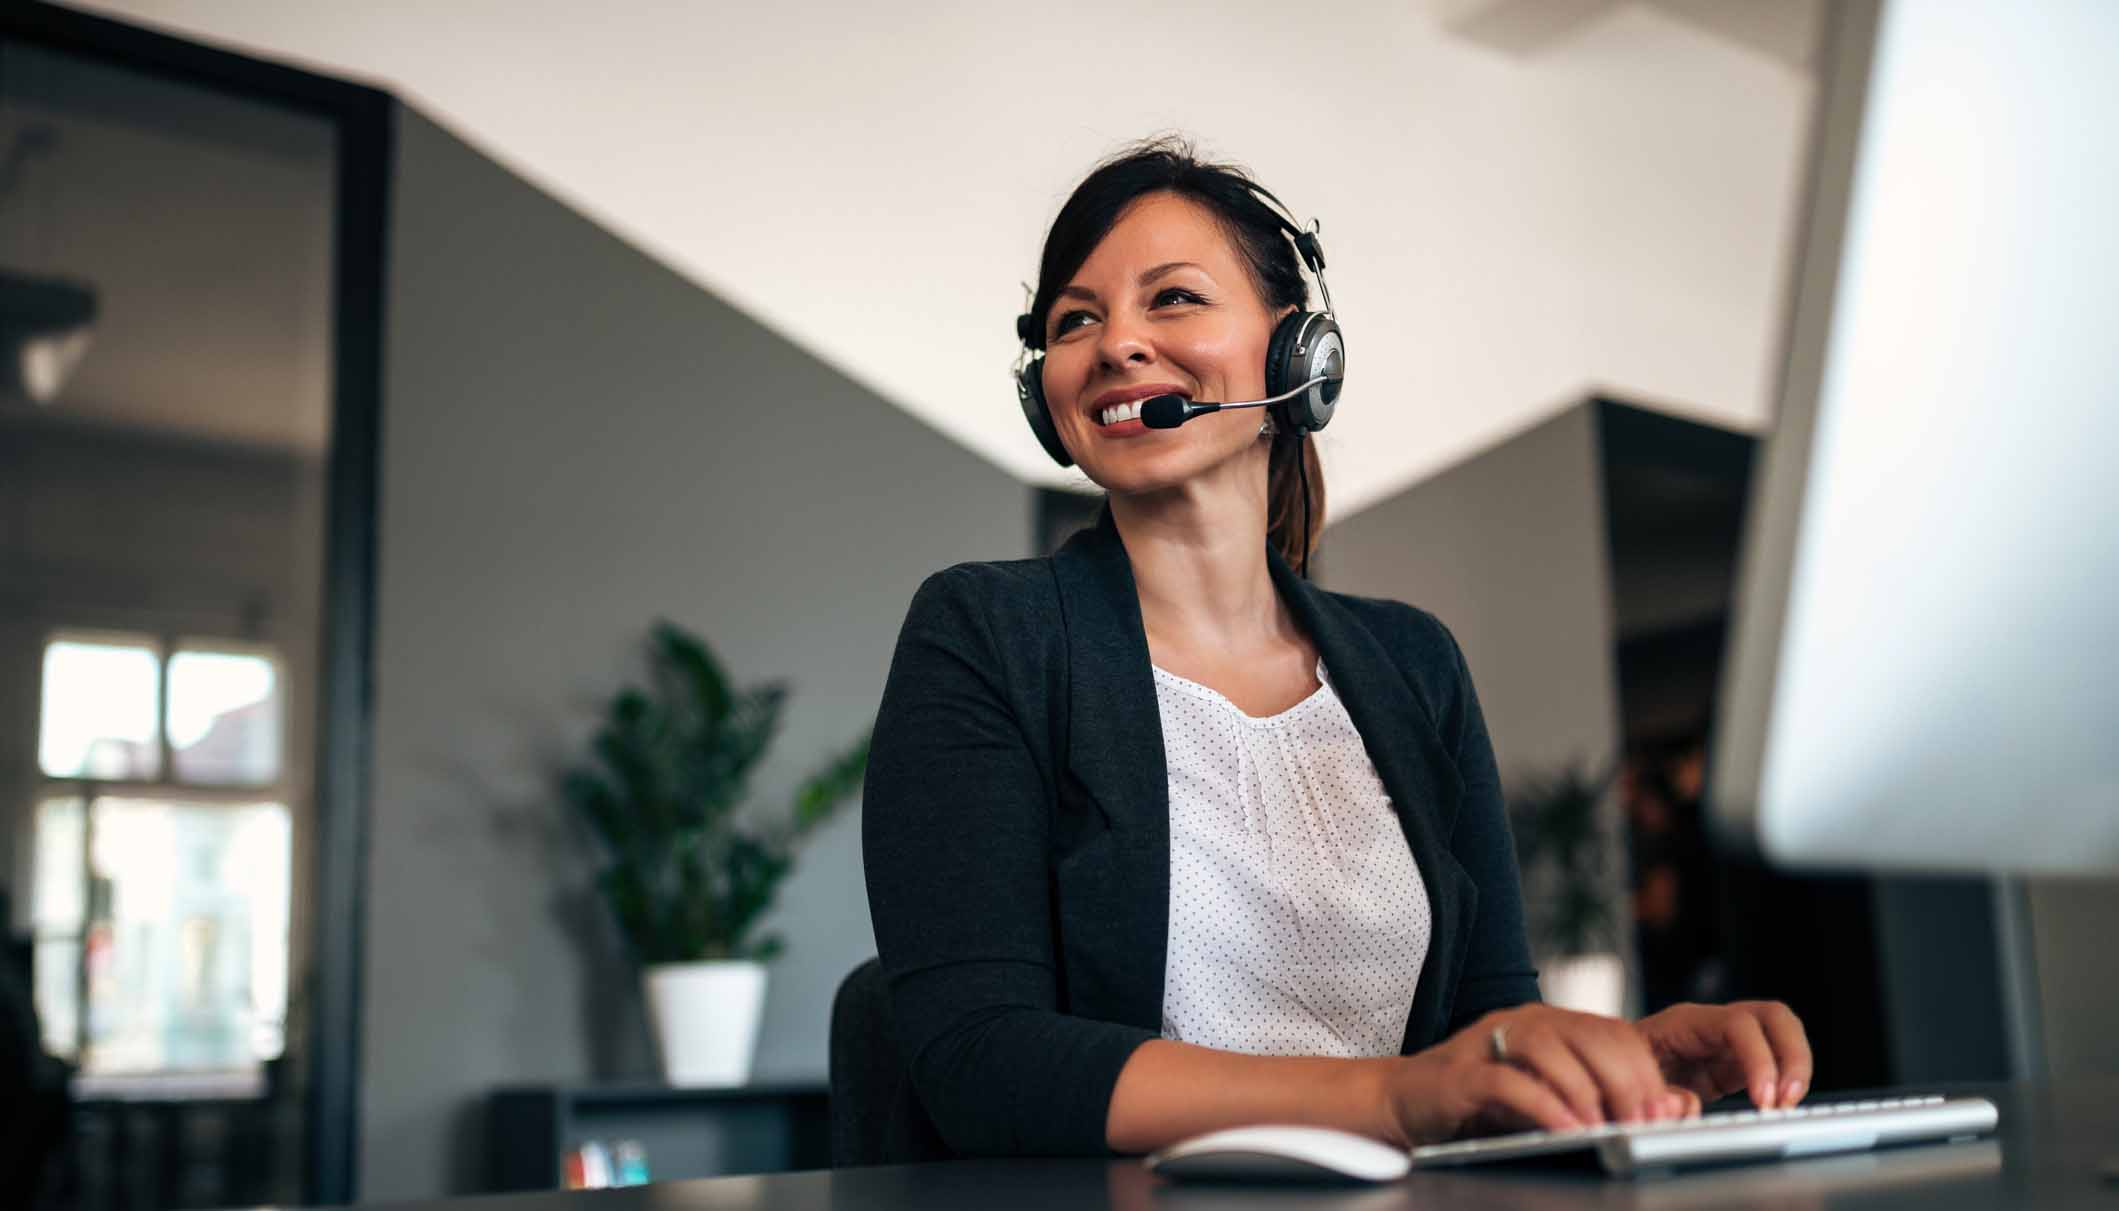 The Total Economic Impact of Verint Customer Engagement Solutions